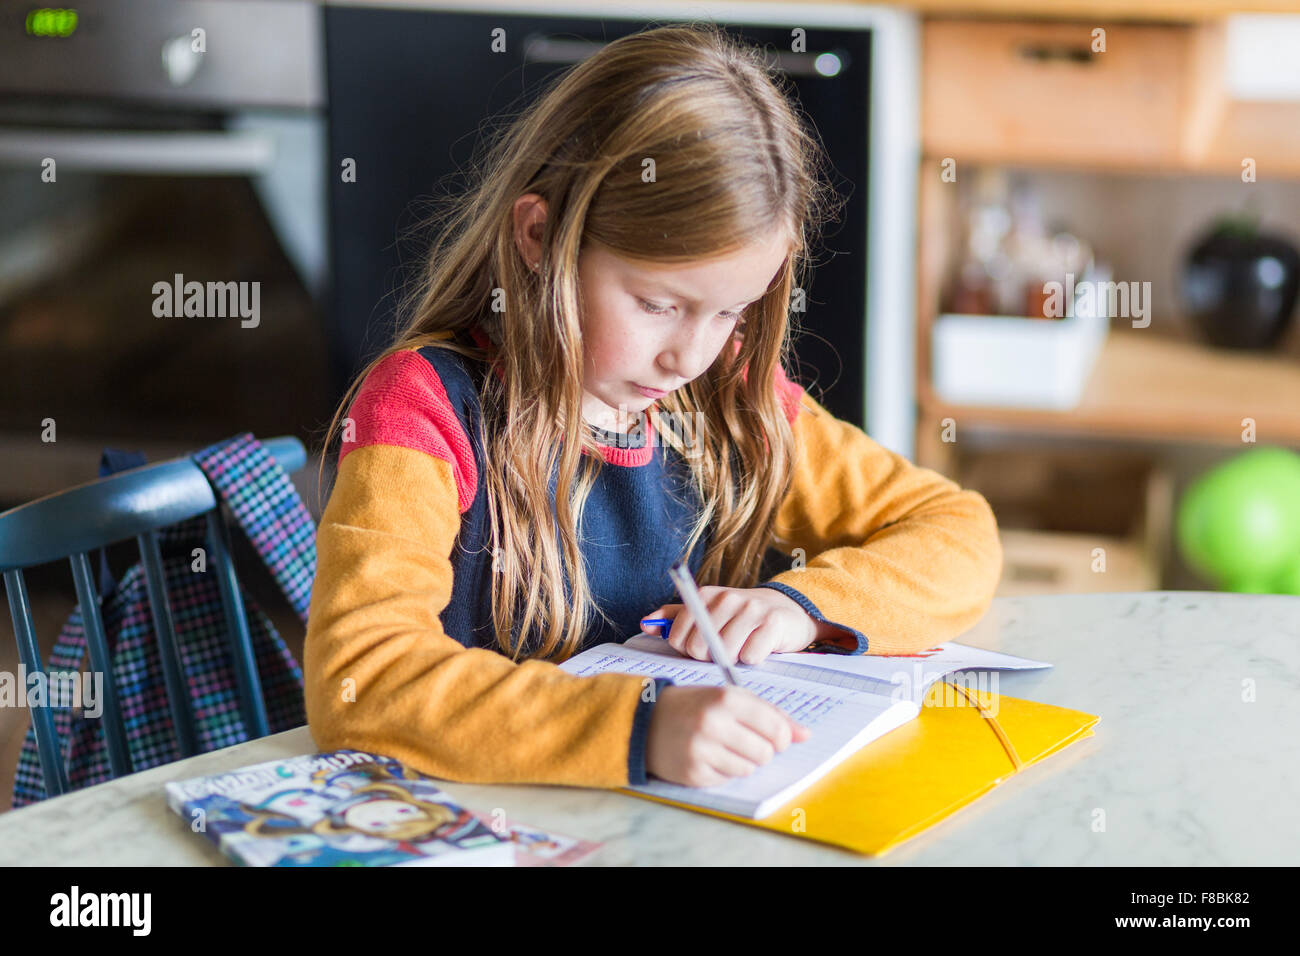 9-year-old girl doing her homework. Stock Photo